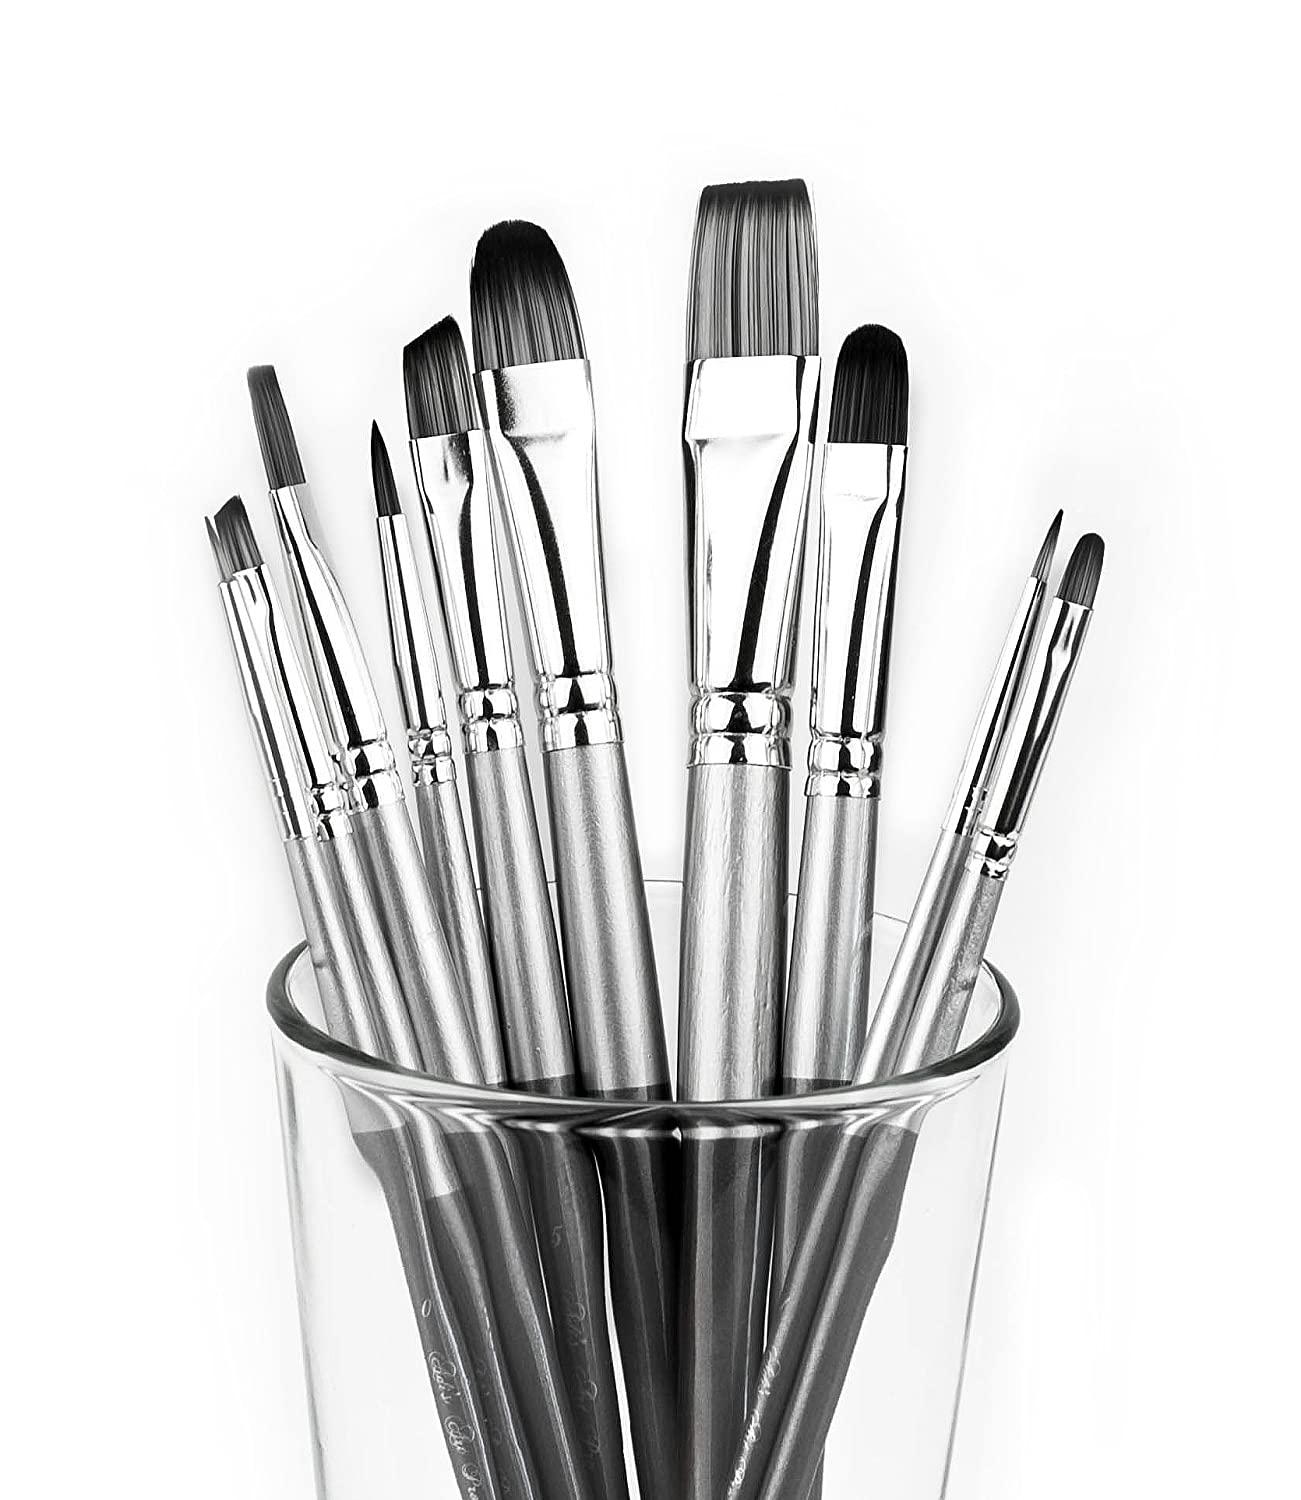 Adi's Art Pro Paint Brushes Set for Acrylic Oil Watercolor, Artist Face and Body Professional Painting Kits with Synthetic Nylon Tips, 10 Pieces (gray) Adi' s store 4336957894